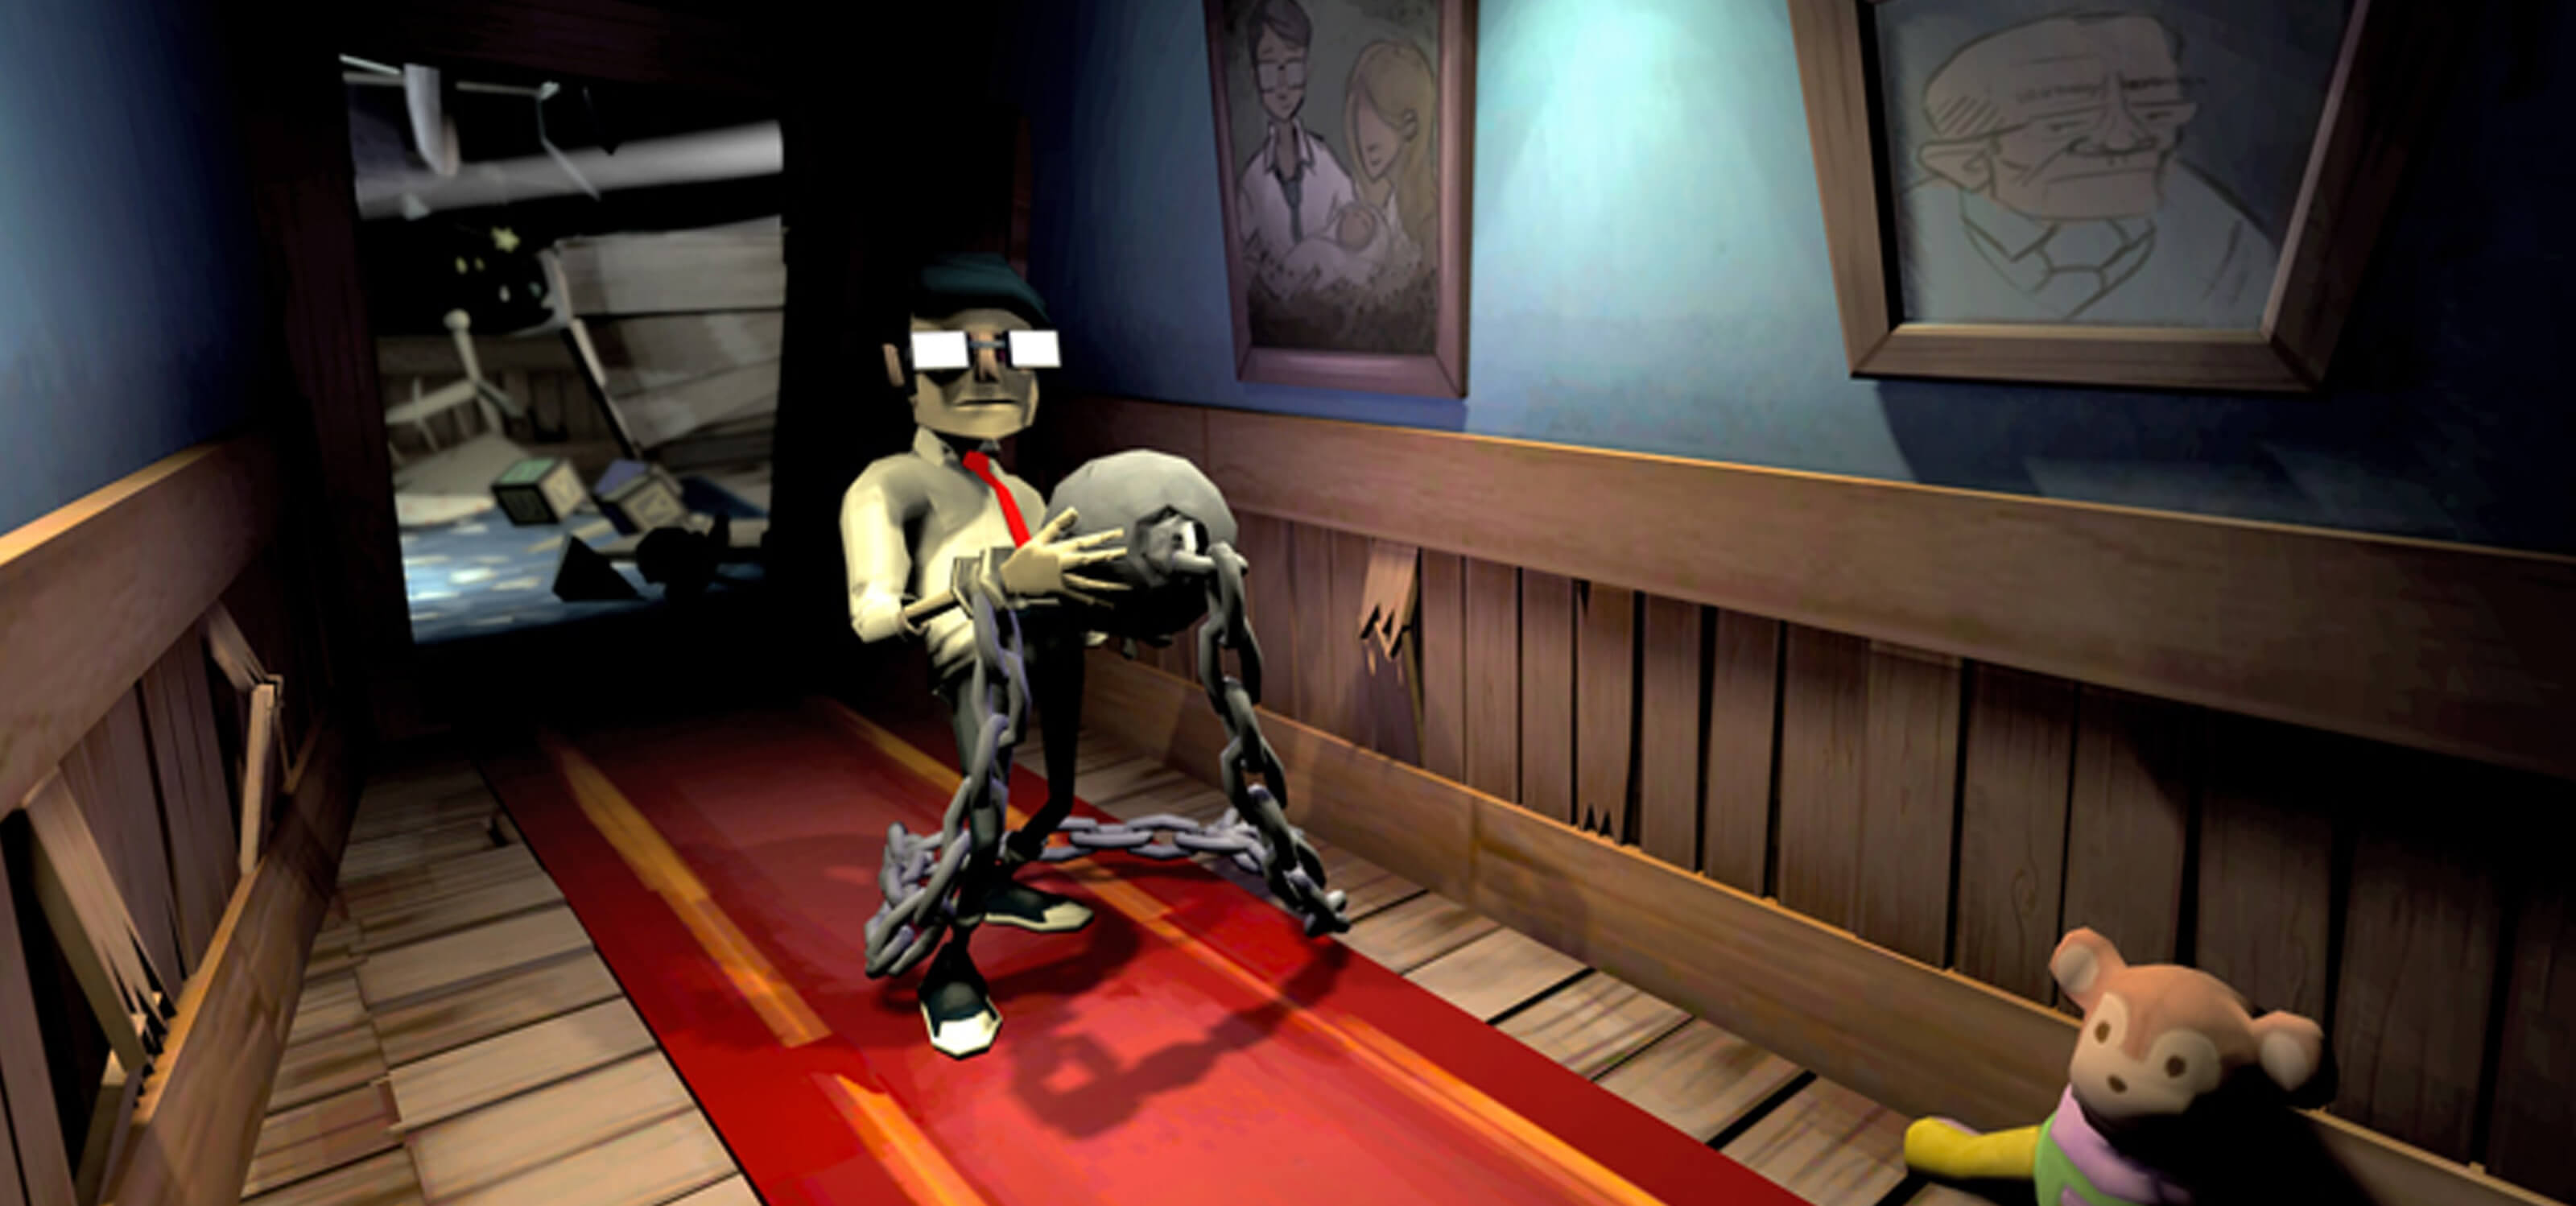 Screenshot from DigiPen student game Chained featuring a young man stumbling down a hallway carrying a ball and chain